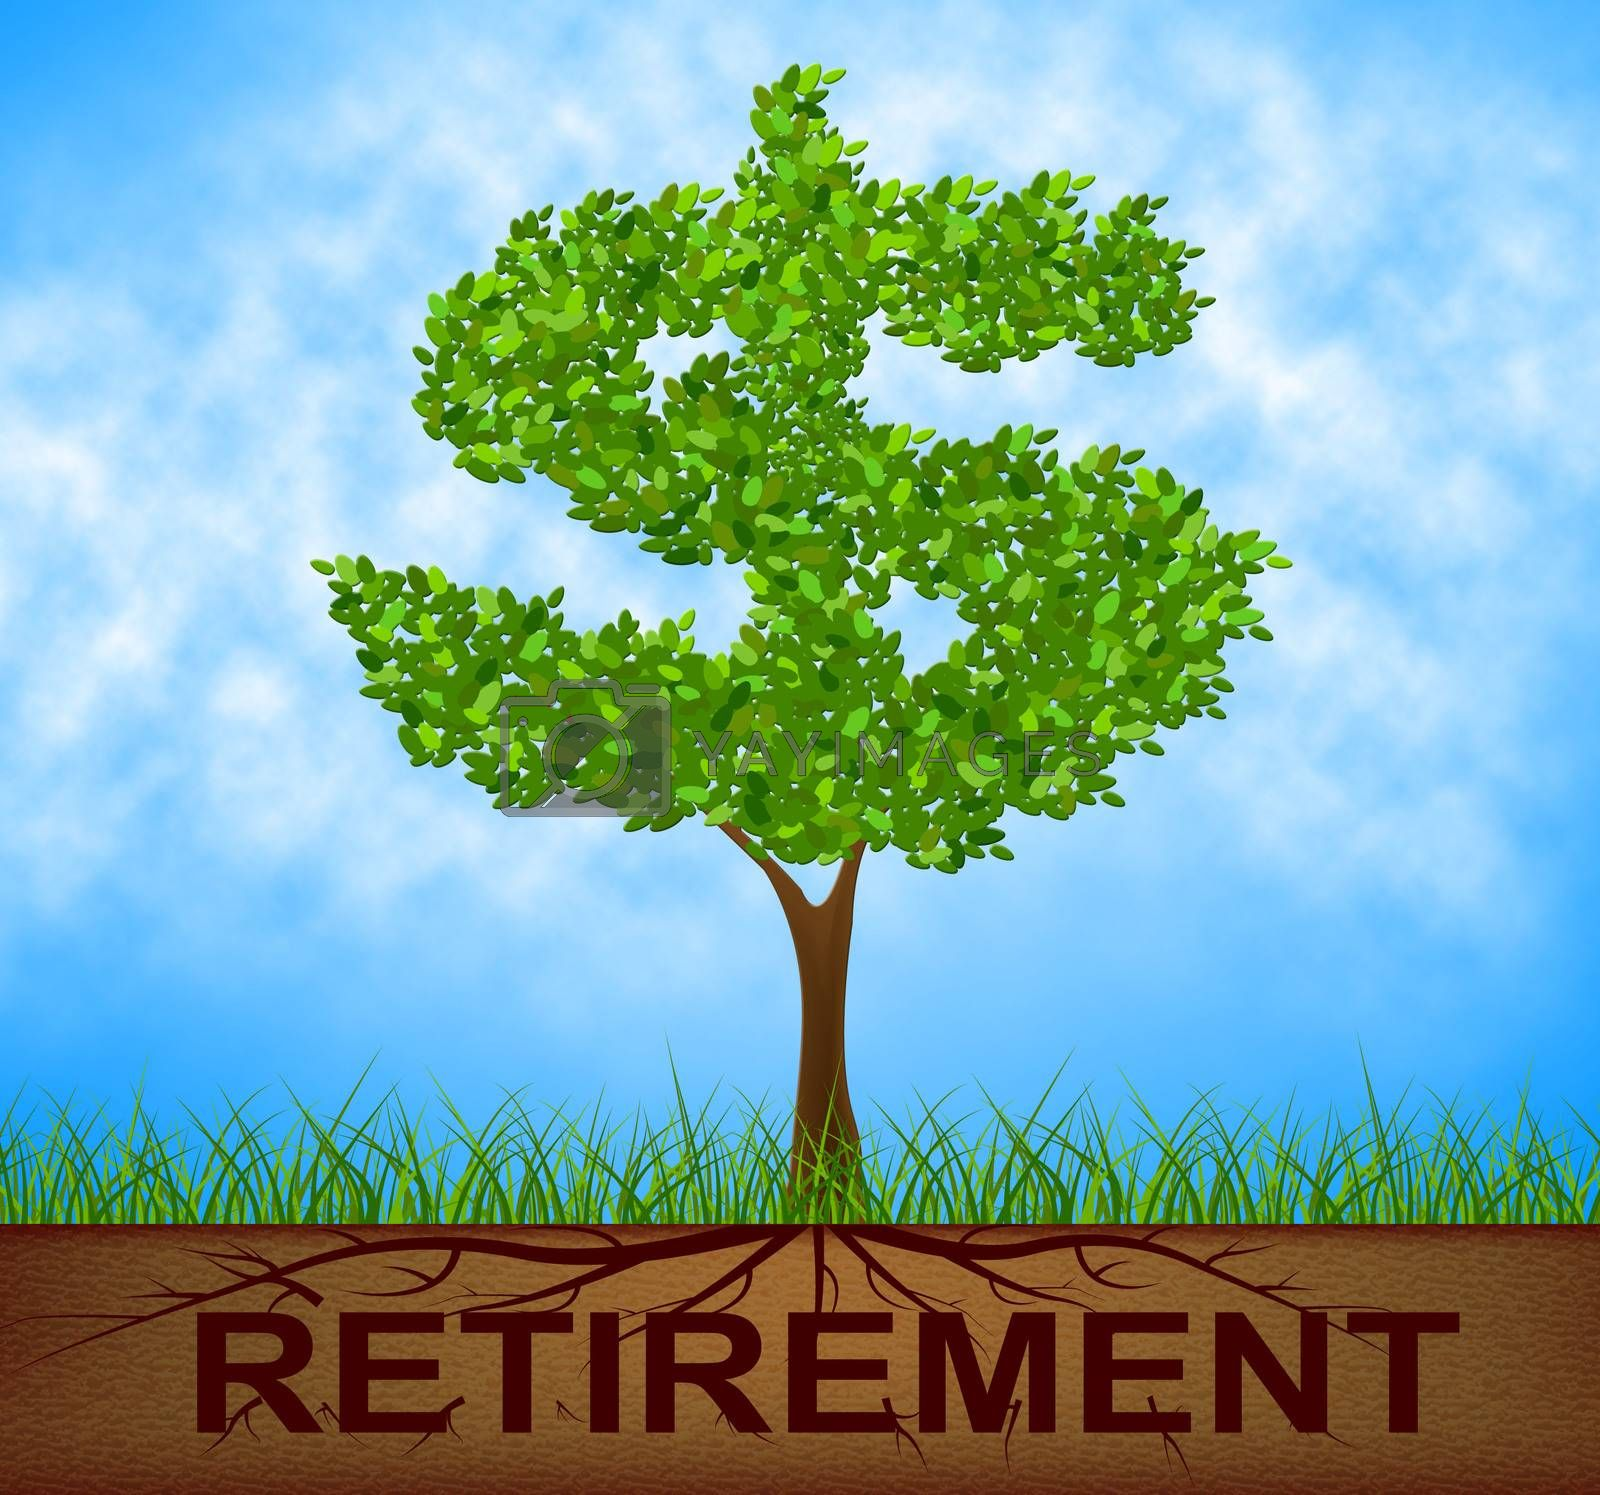 Retirement Tree Indicates Finish Work And Branch by stuartmiles